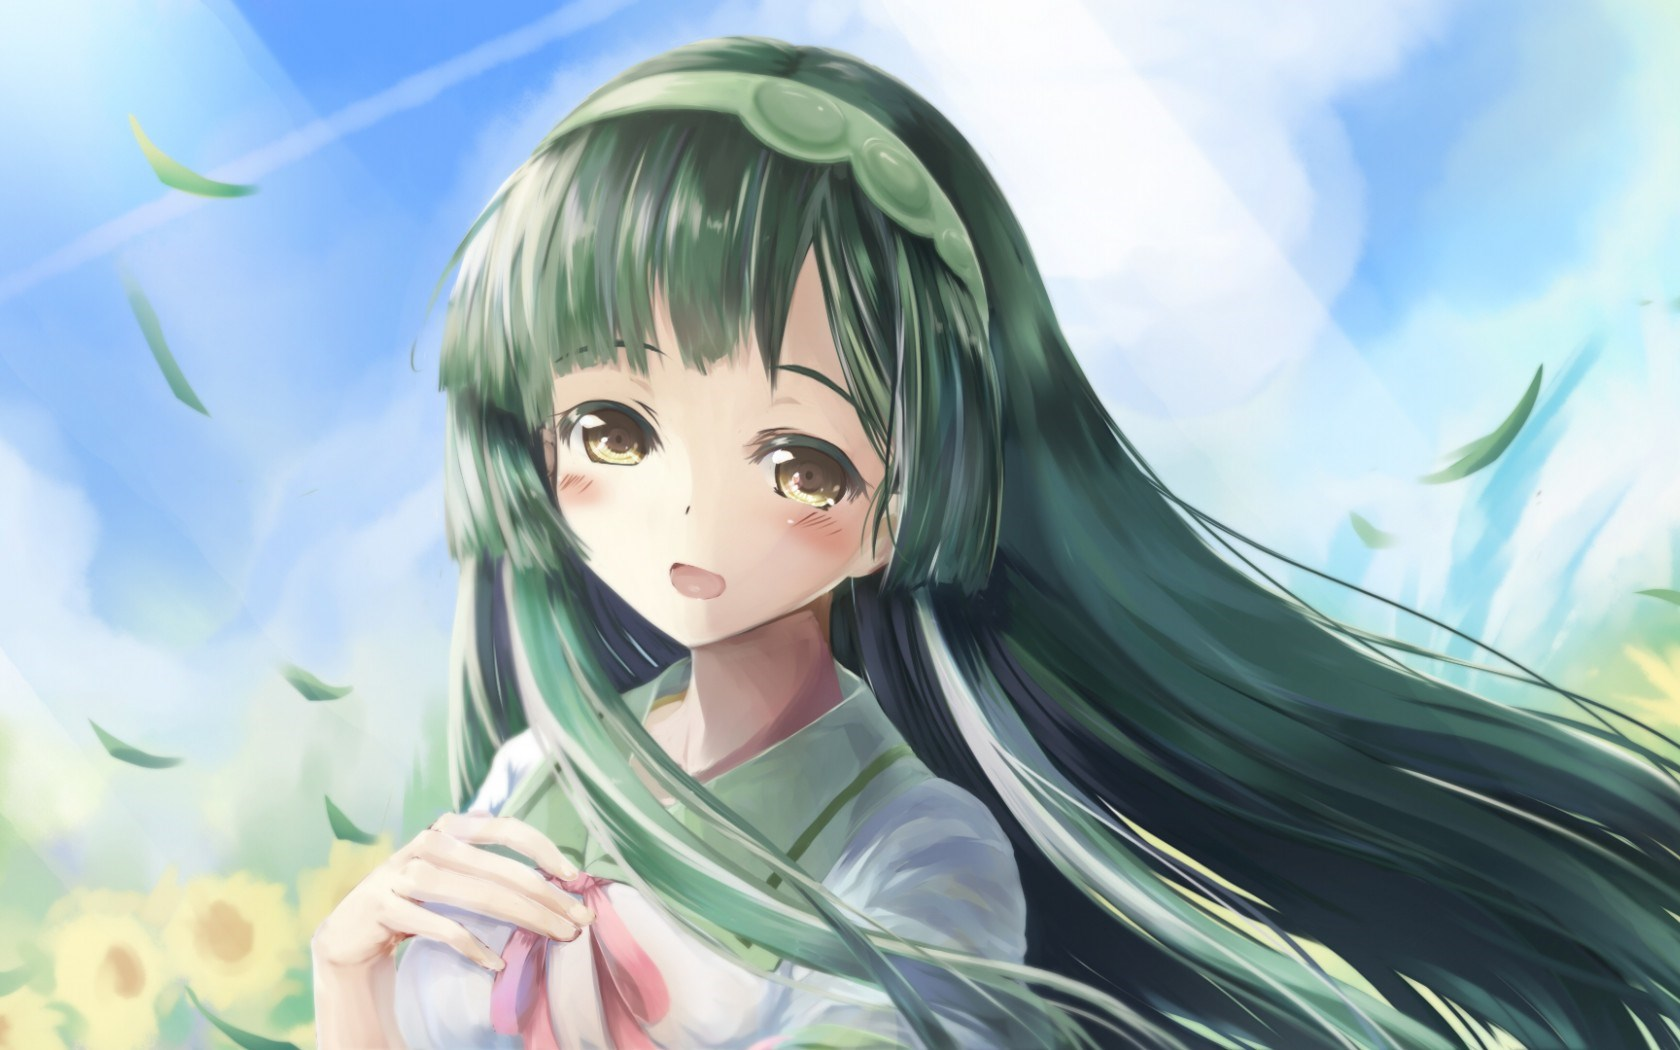 Art Tohoku Zunko Vocaloid Girl Anime